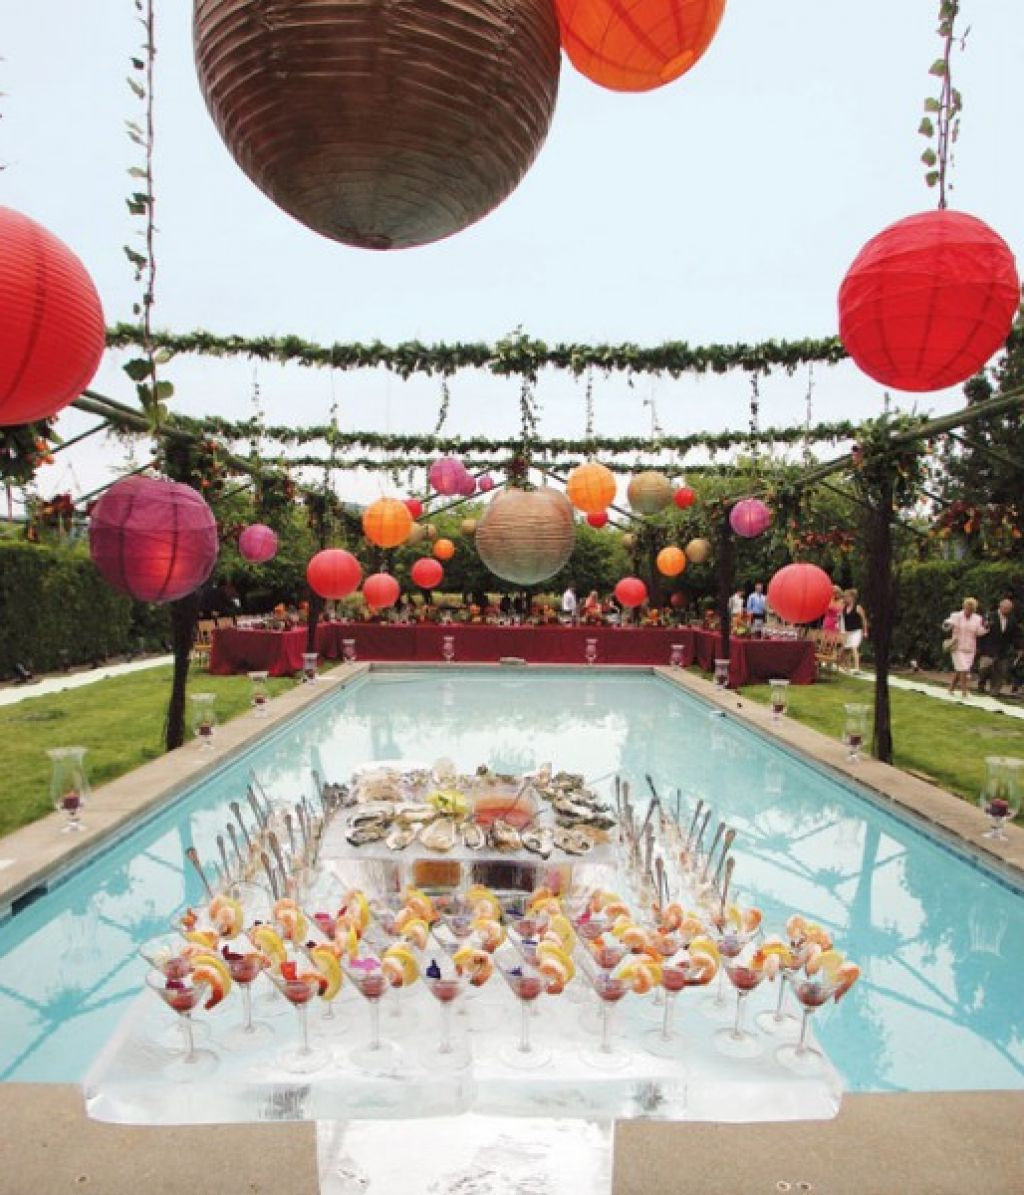 Pool Party Decorations Ideas say it in the swimming pool Wedding Reception Pool Party Decorating Ideas New Wedding Design For Pool Party Decorating Ideas